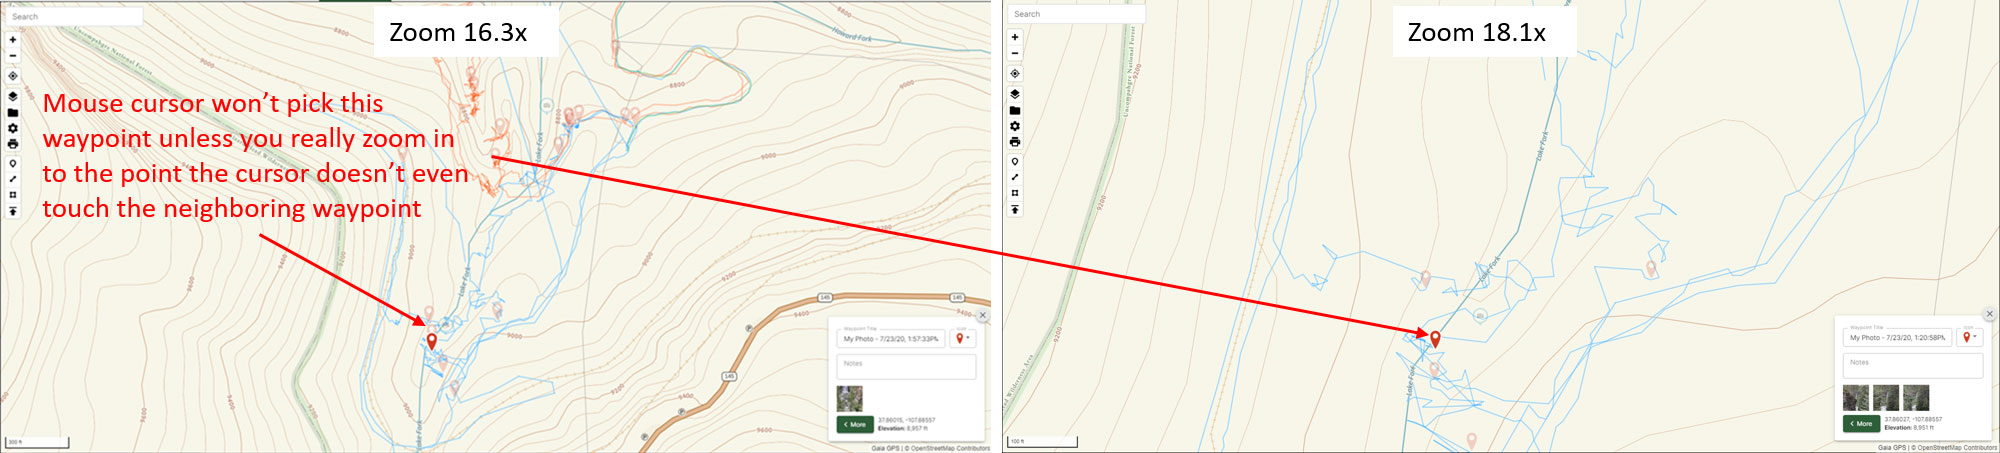 An example of a poor interface on Gaia GPS' online map for something as simple as selecting a waypoint